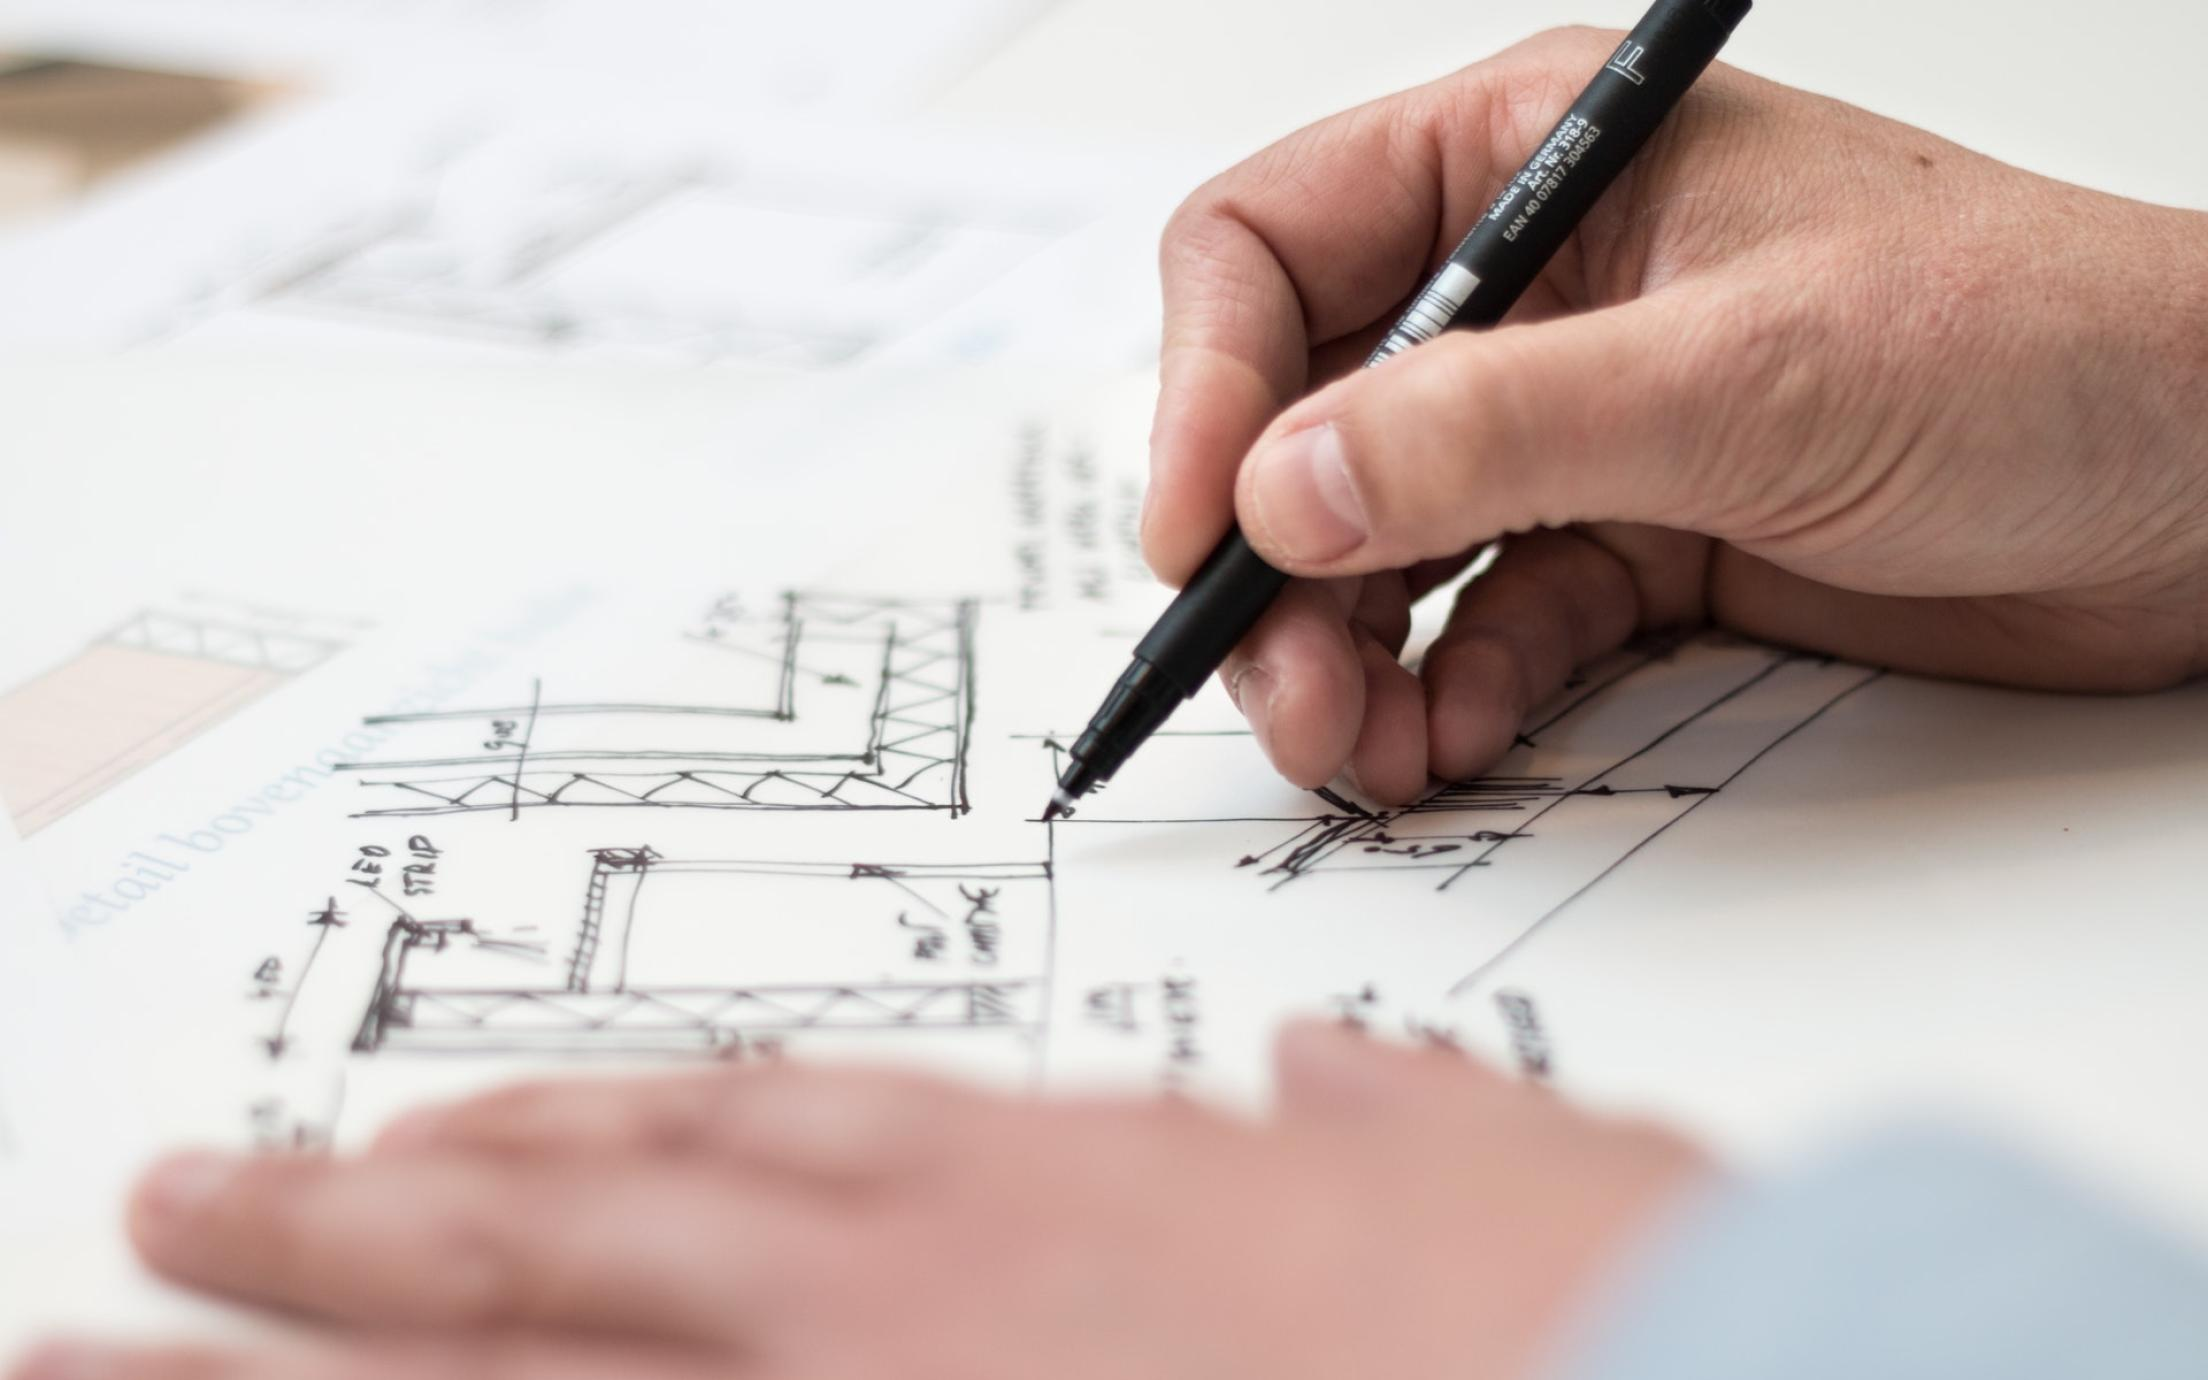 hands sketching an architectural drawing